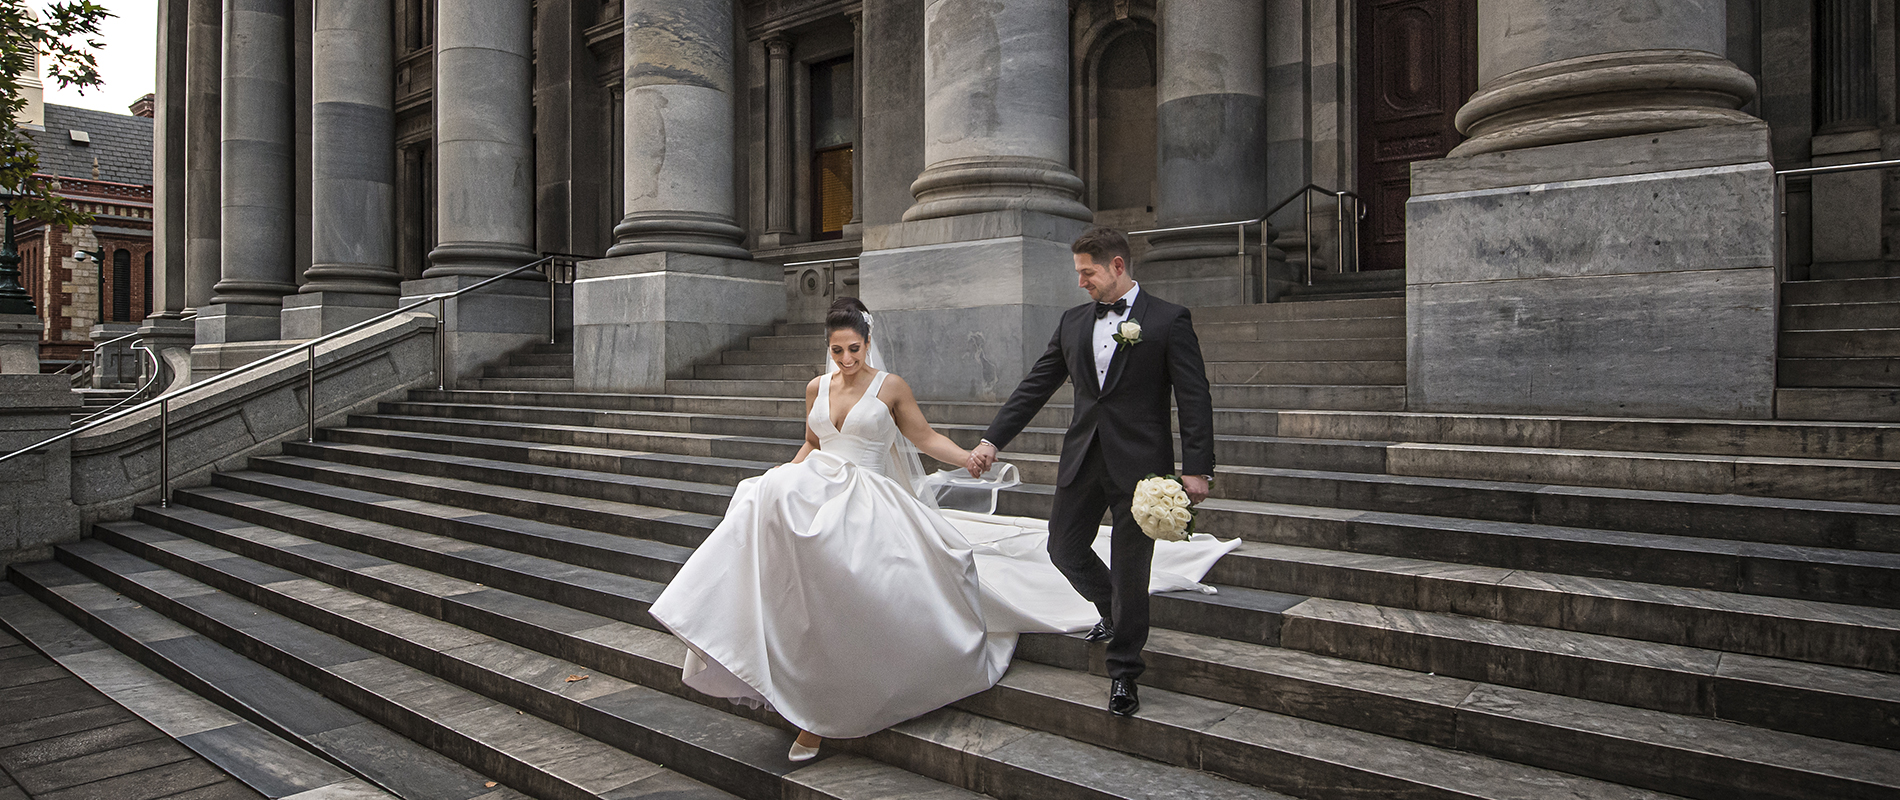 Bride and groom casually walking down the steps of parliment house in adelaide on their wedding day